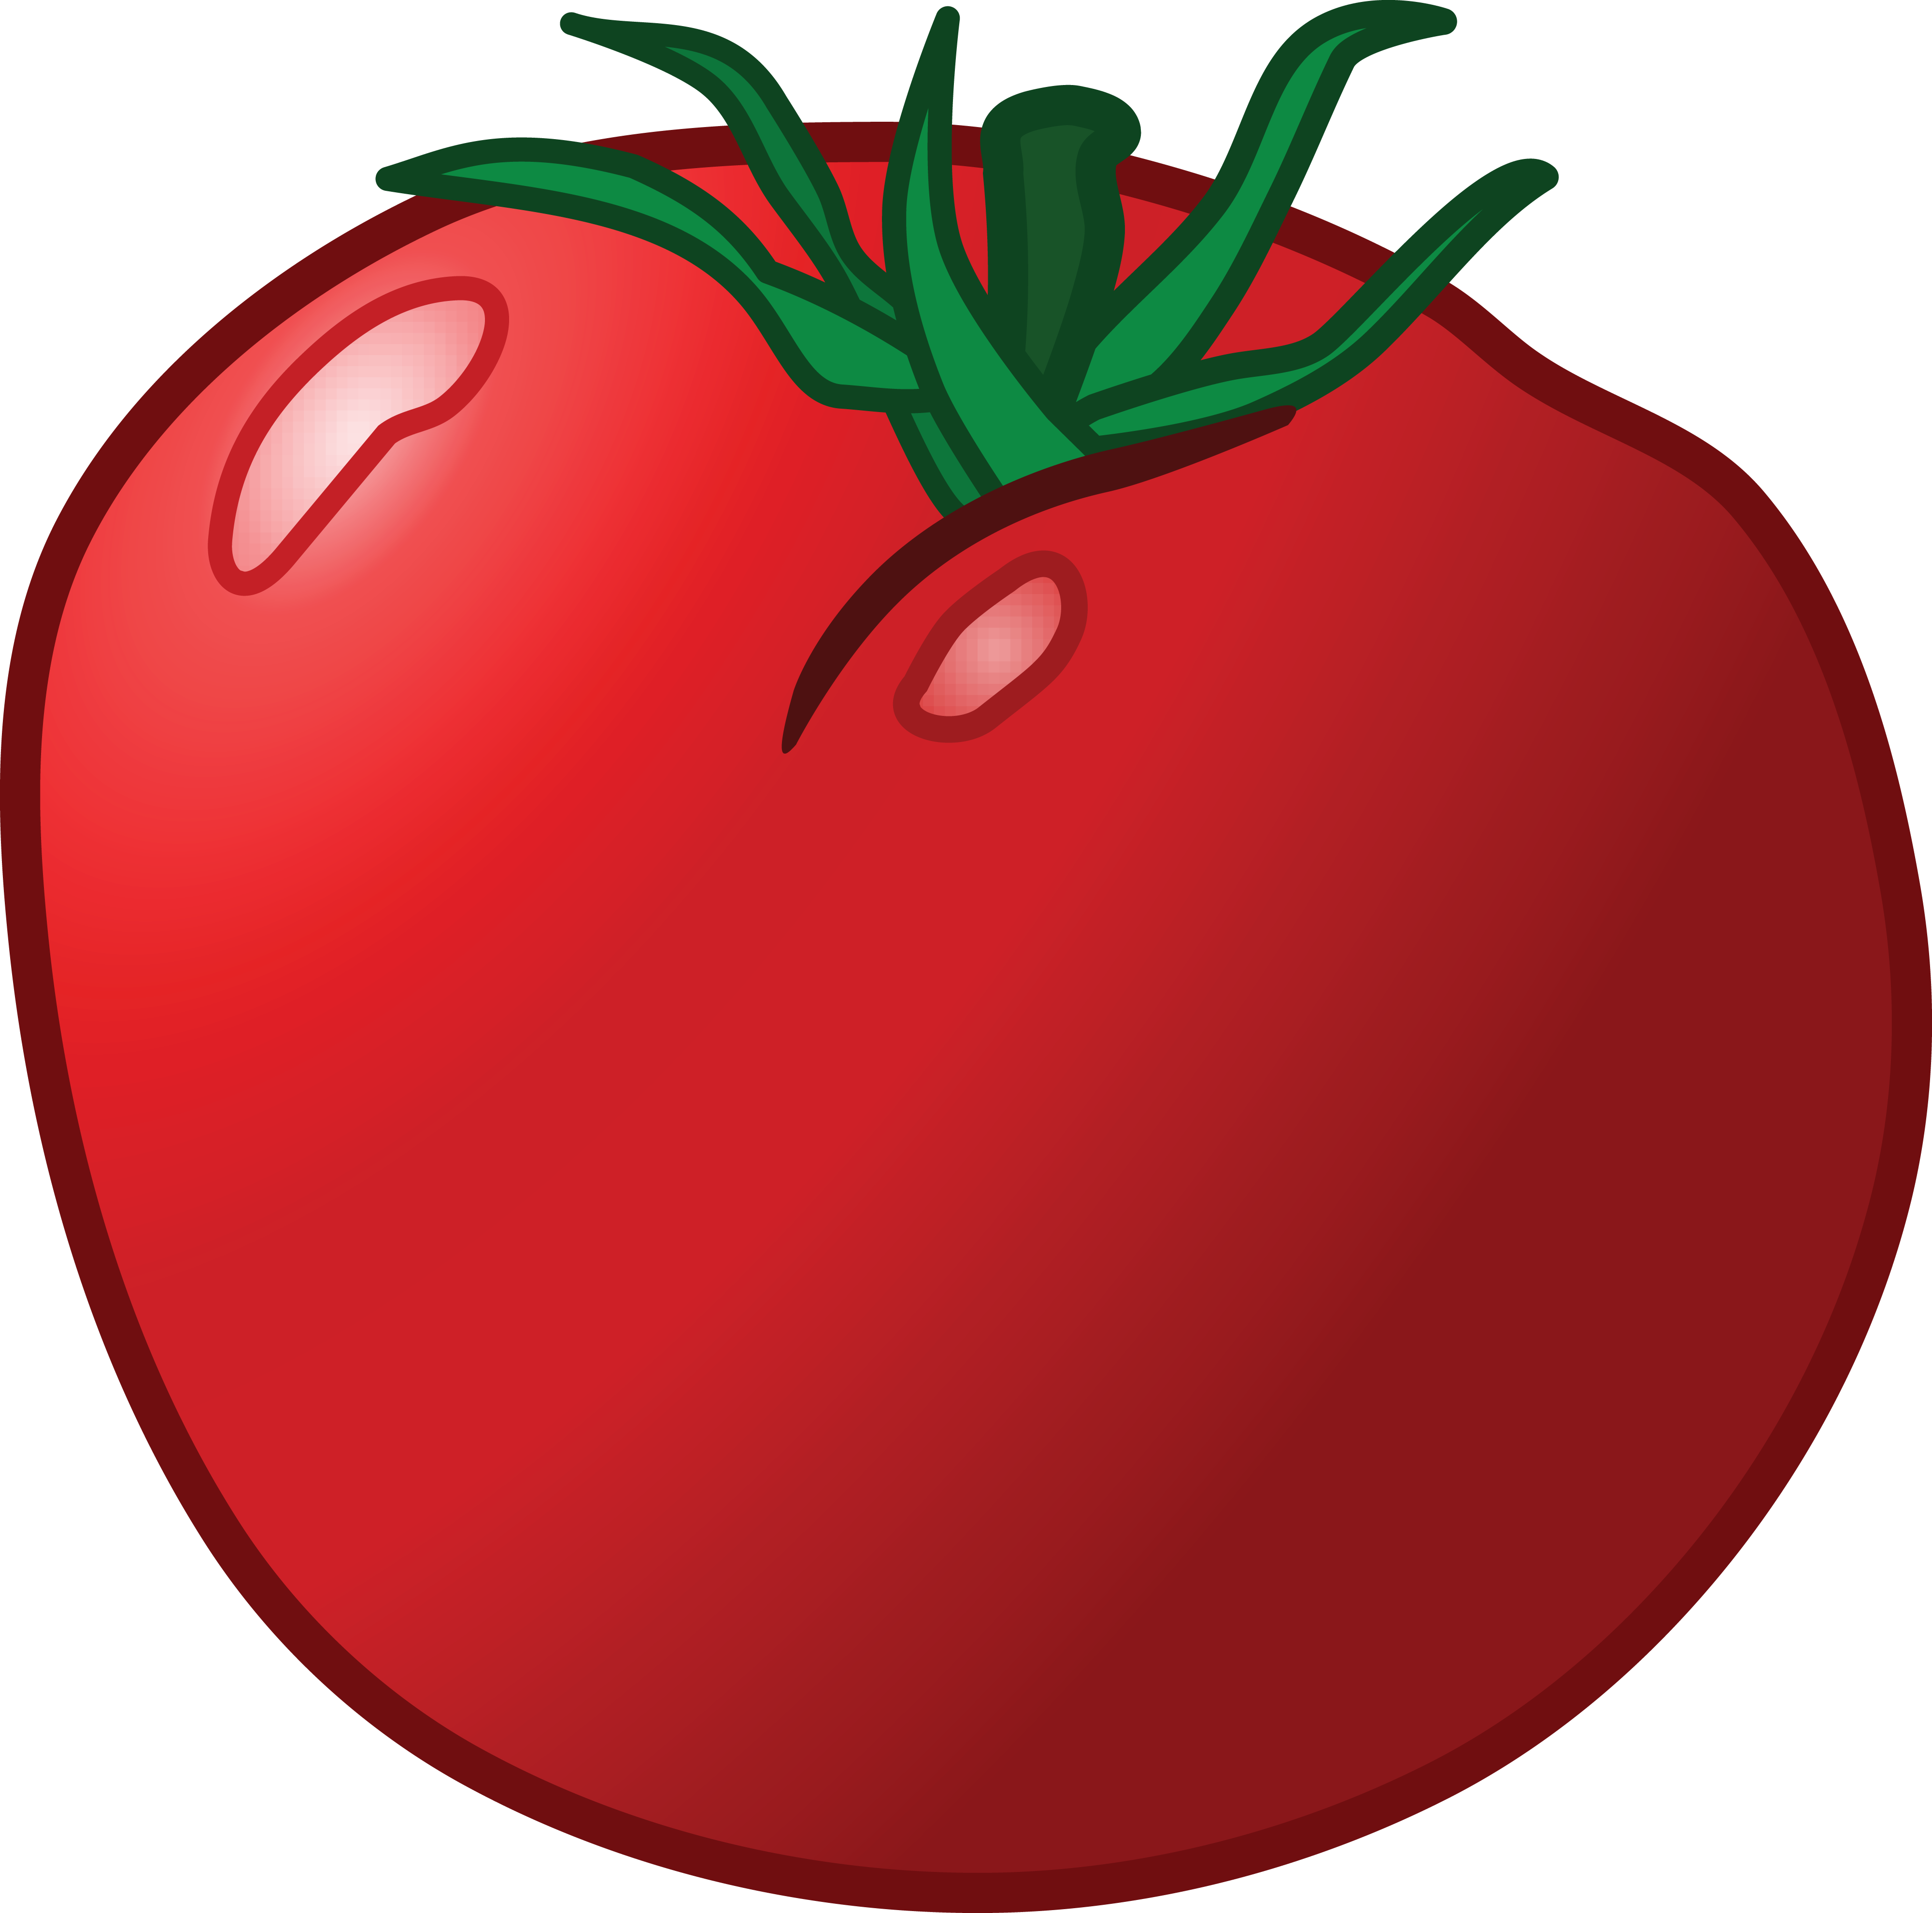 tomatoes clipart lukisan